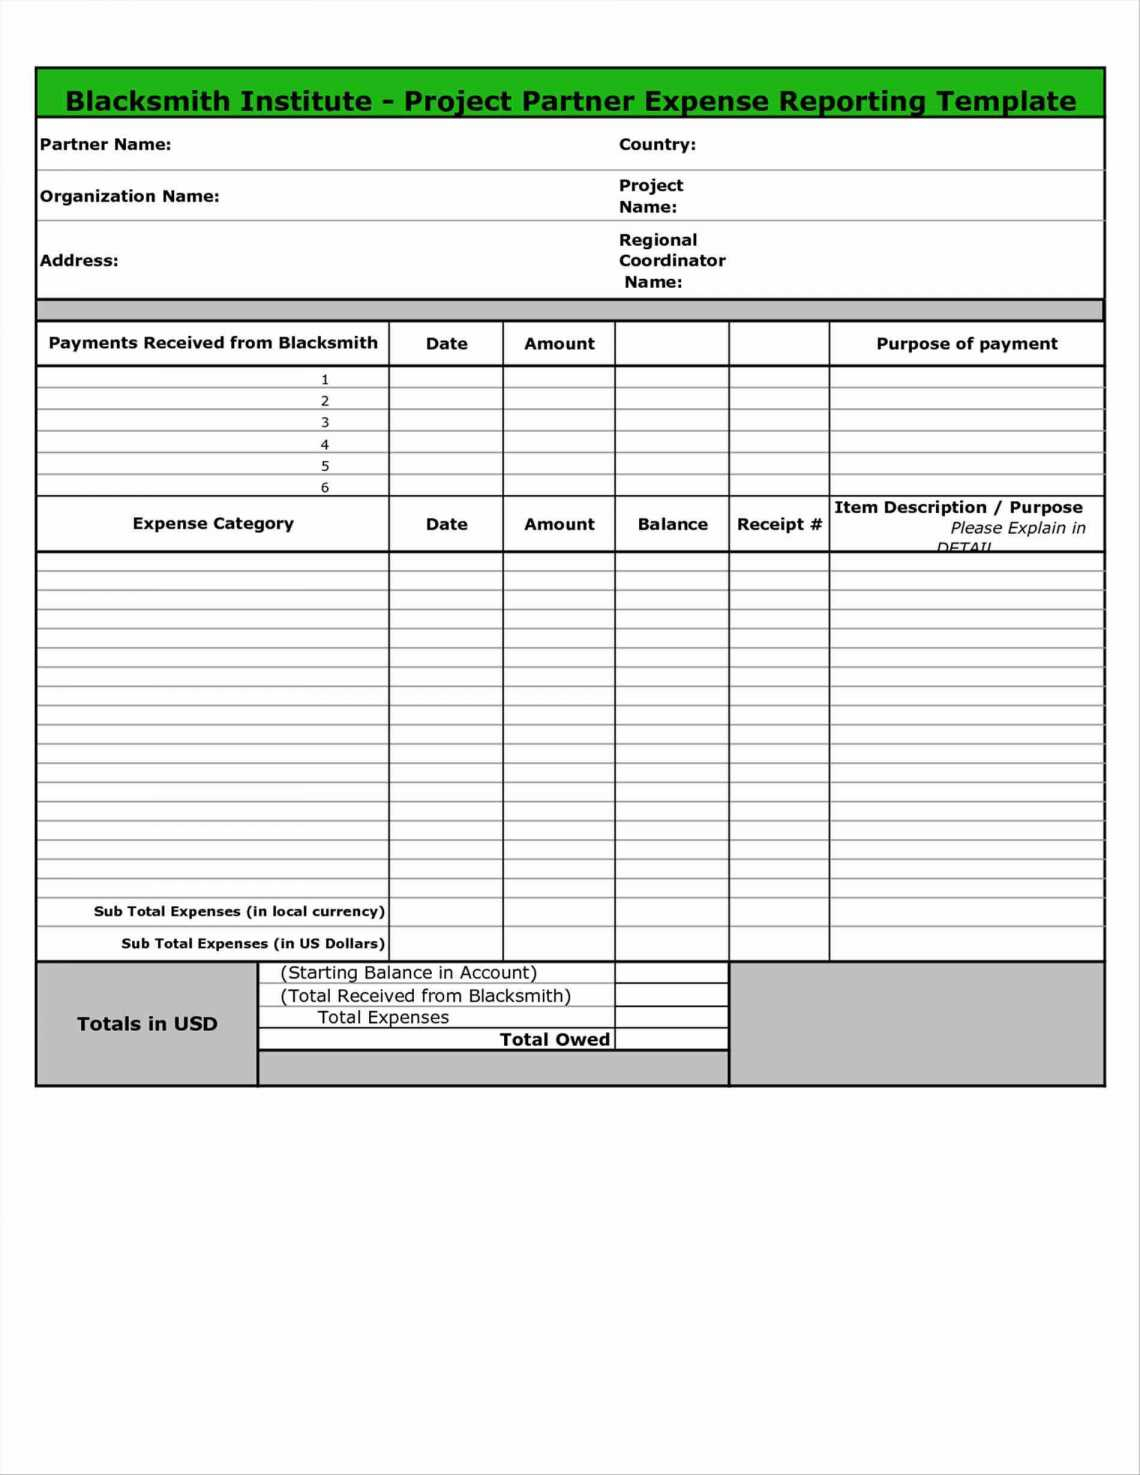 40 Expense Report Templates To Help You Save Money Template Lab Inside Detailed Expense Report Template Detailed Expense Report Template Expense Spreadshee Expense Spreadshee detailed expense report template